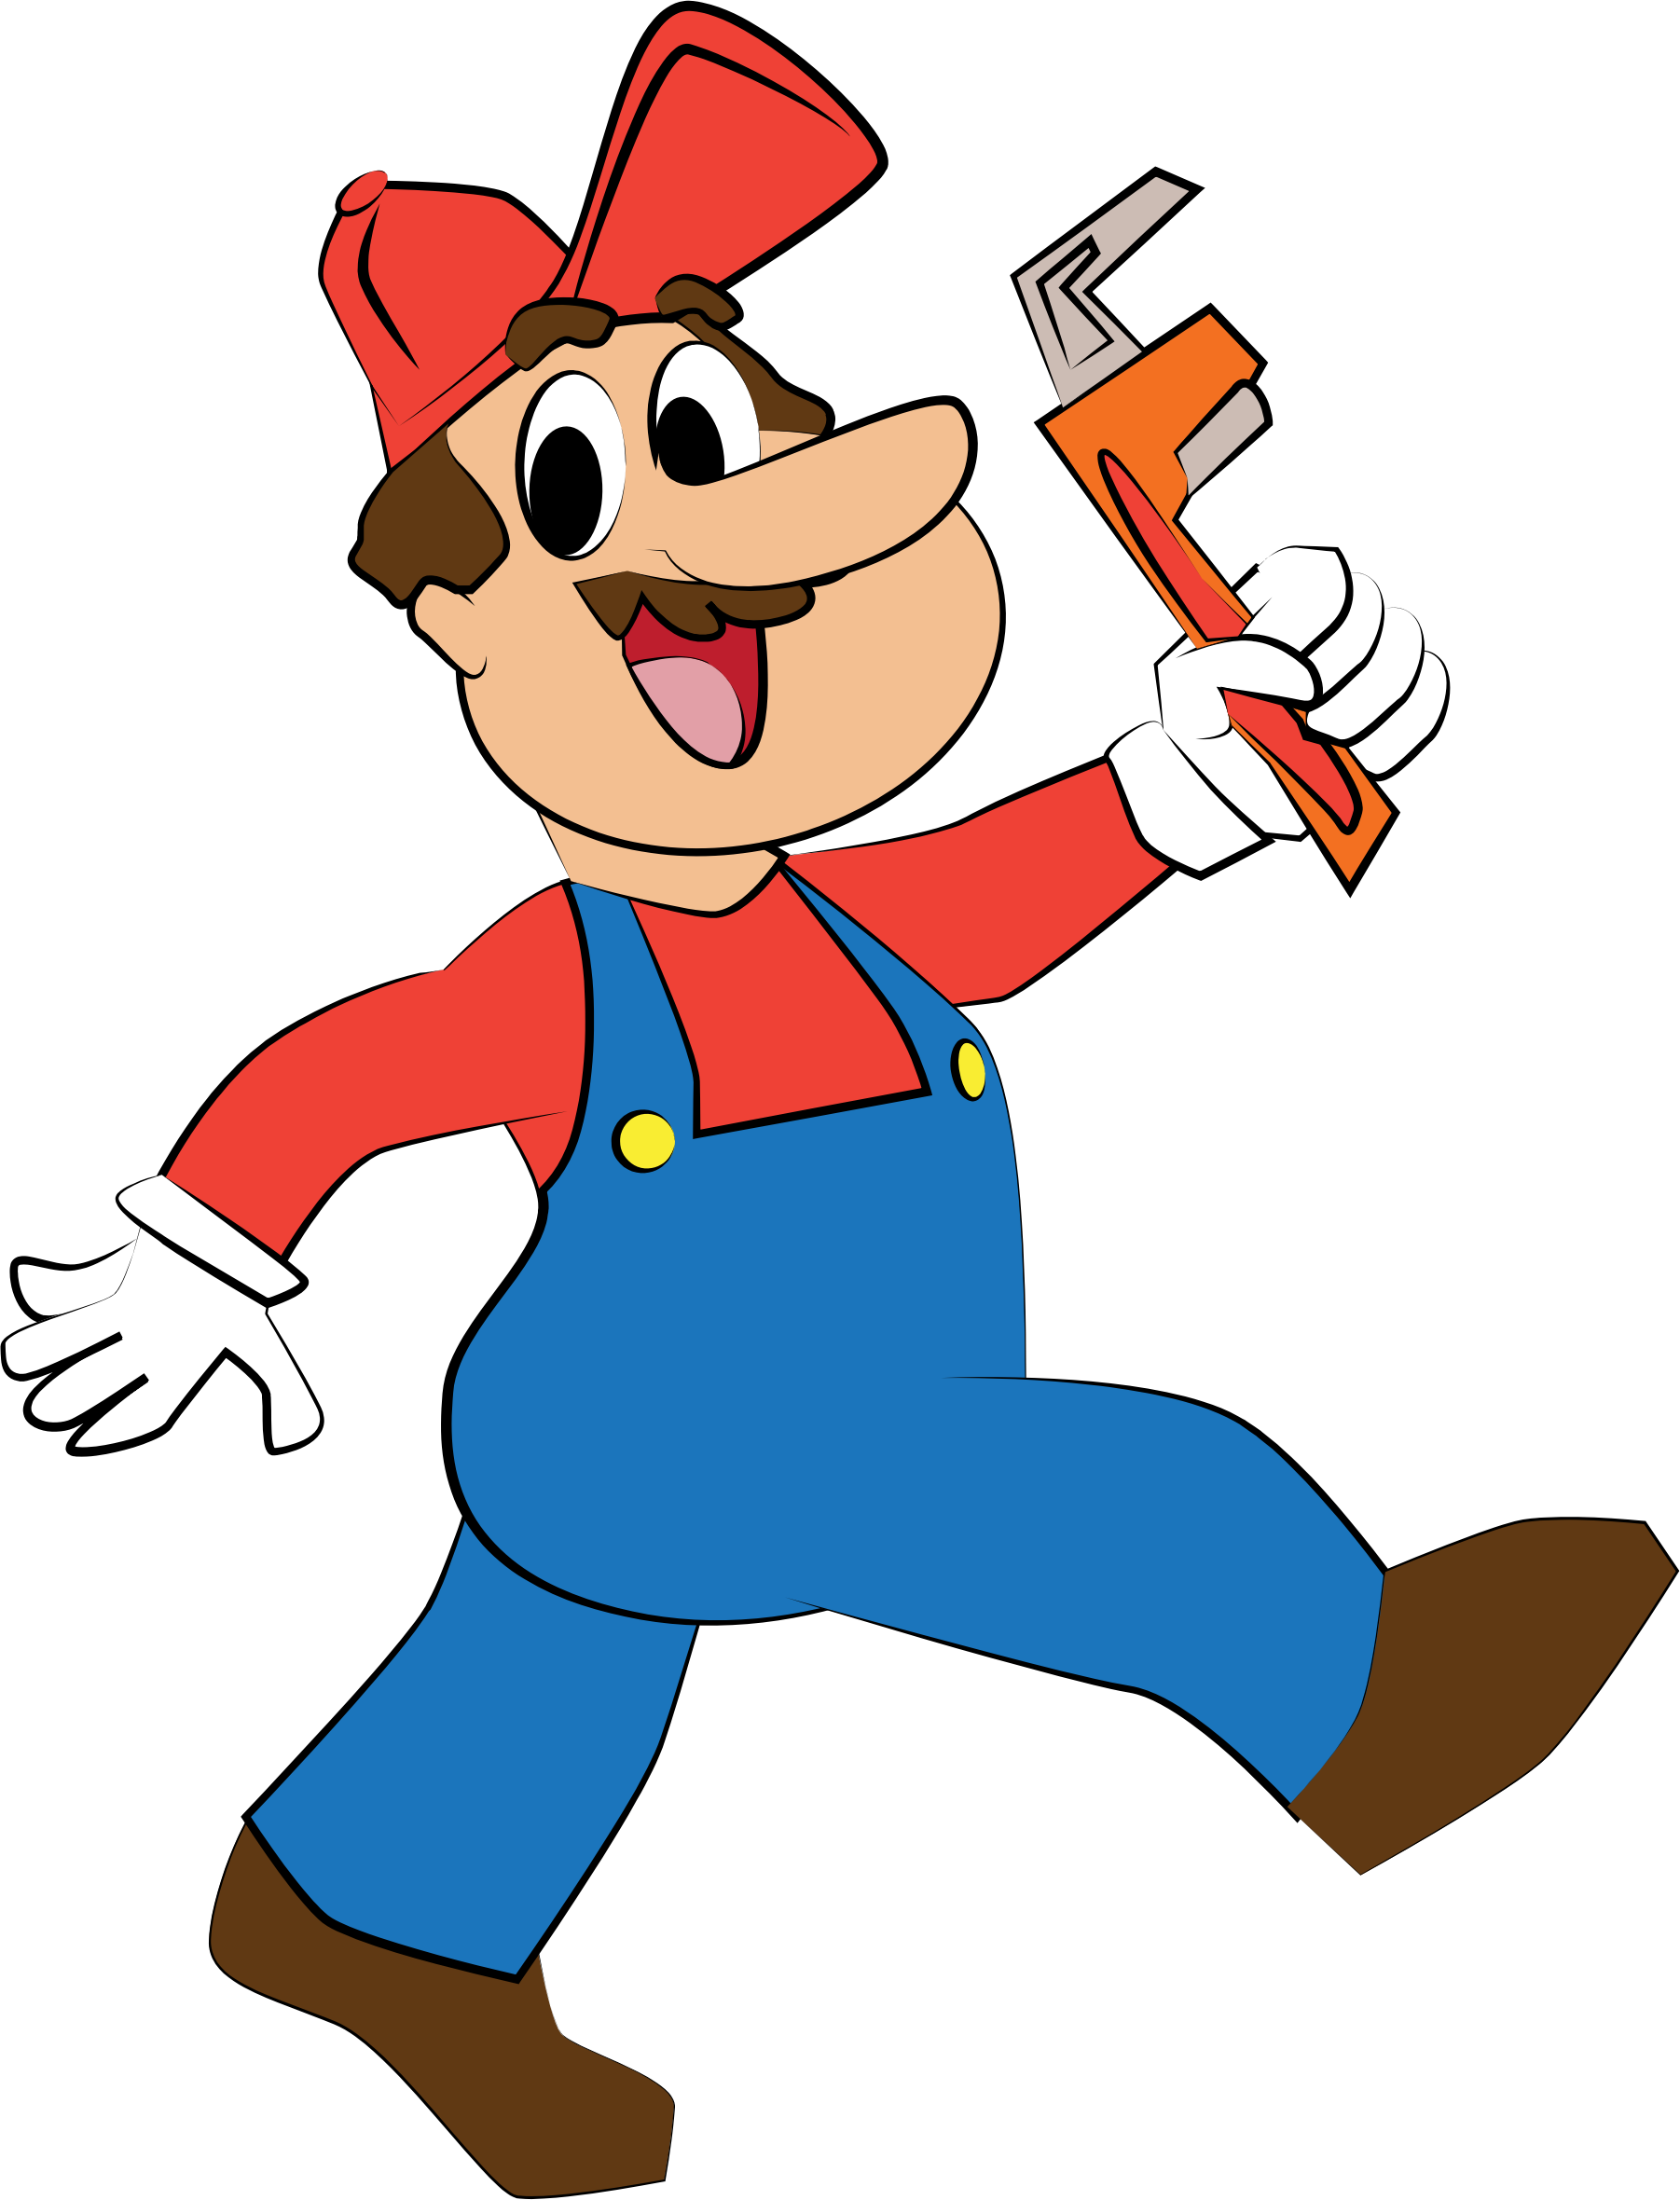 Big image png. Plumber clipart vector royalty free download